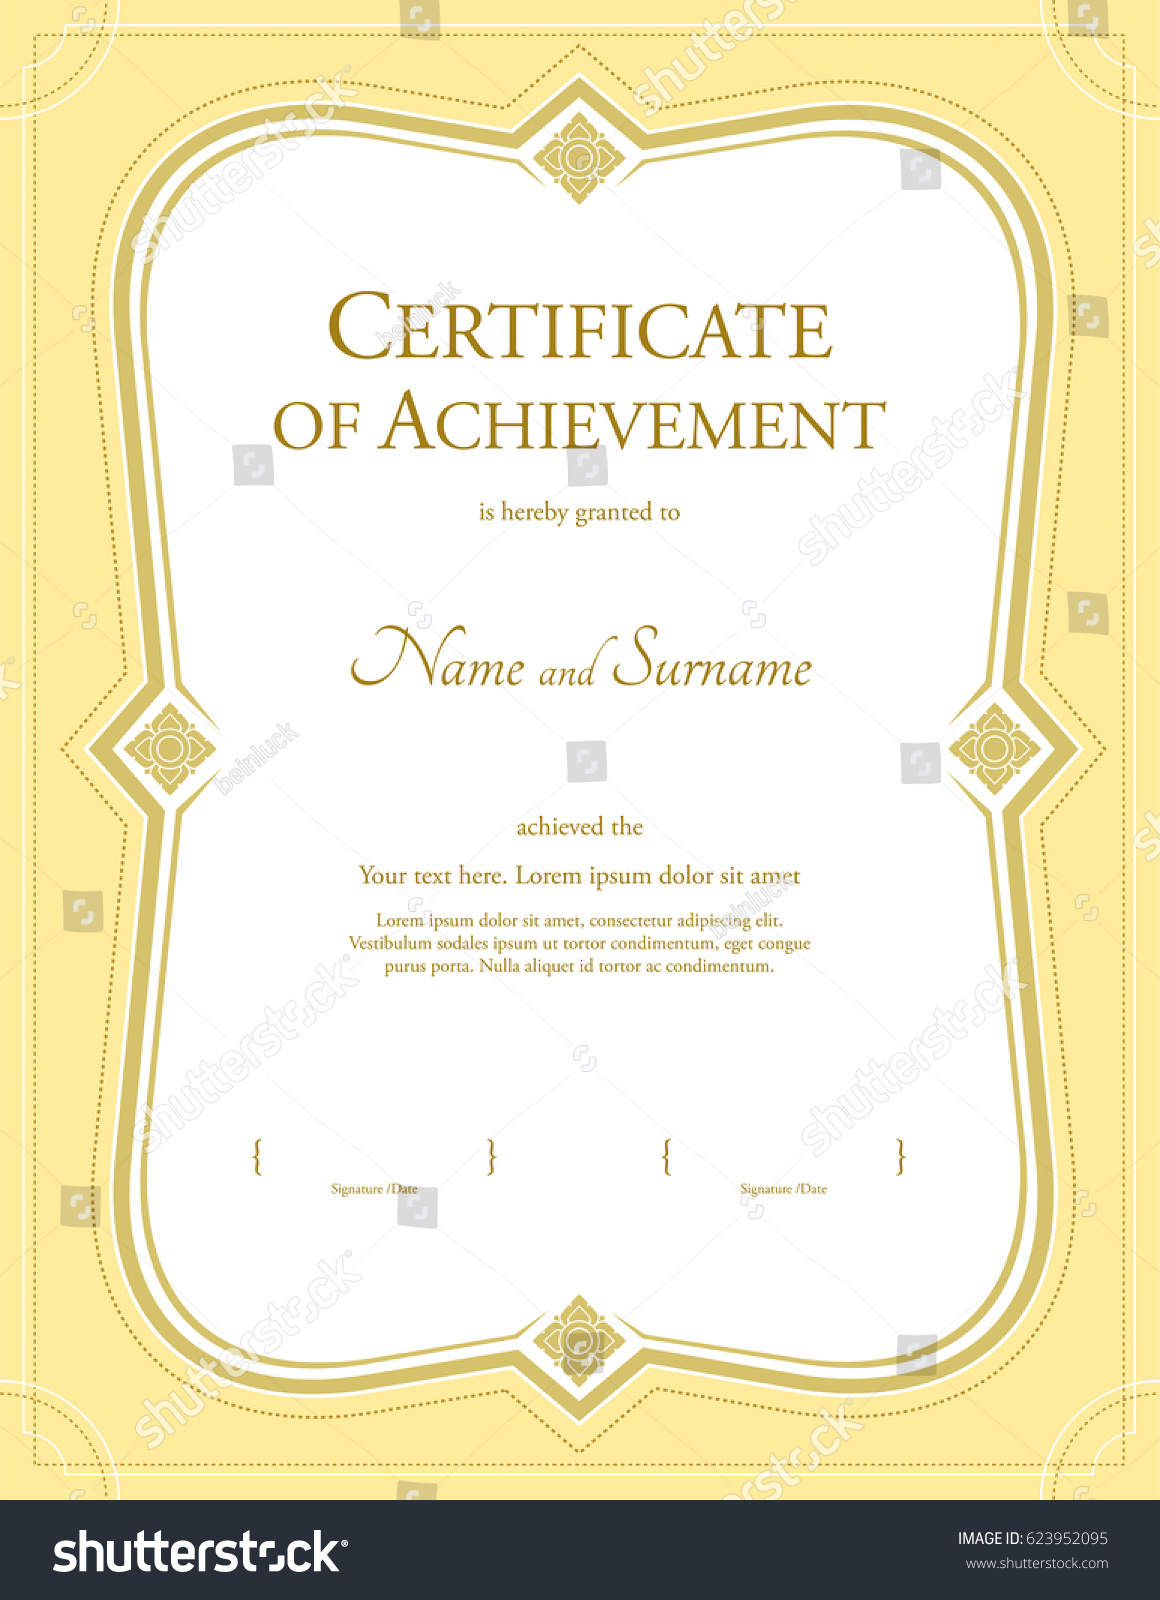 Certificate of achievement template coupon sheet template car dare graduation certificate template choice image certificate stock vector portrait certificate of achievement template in vector yadclub Gallery